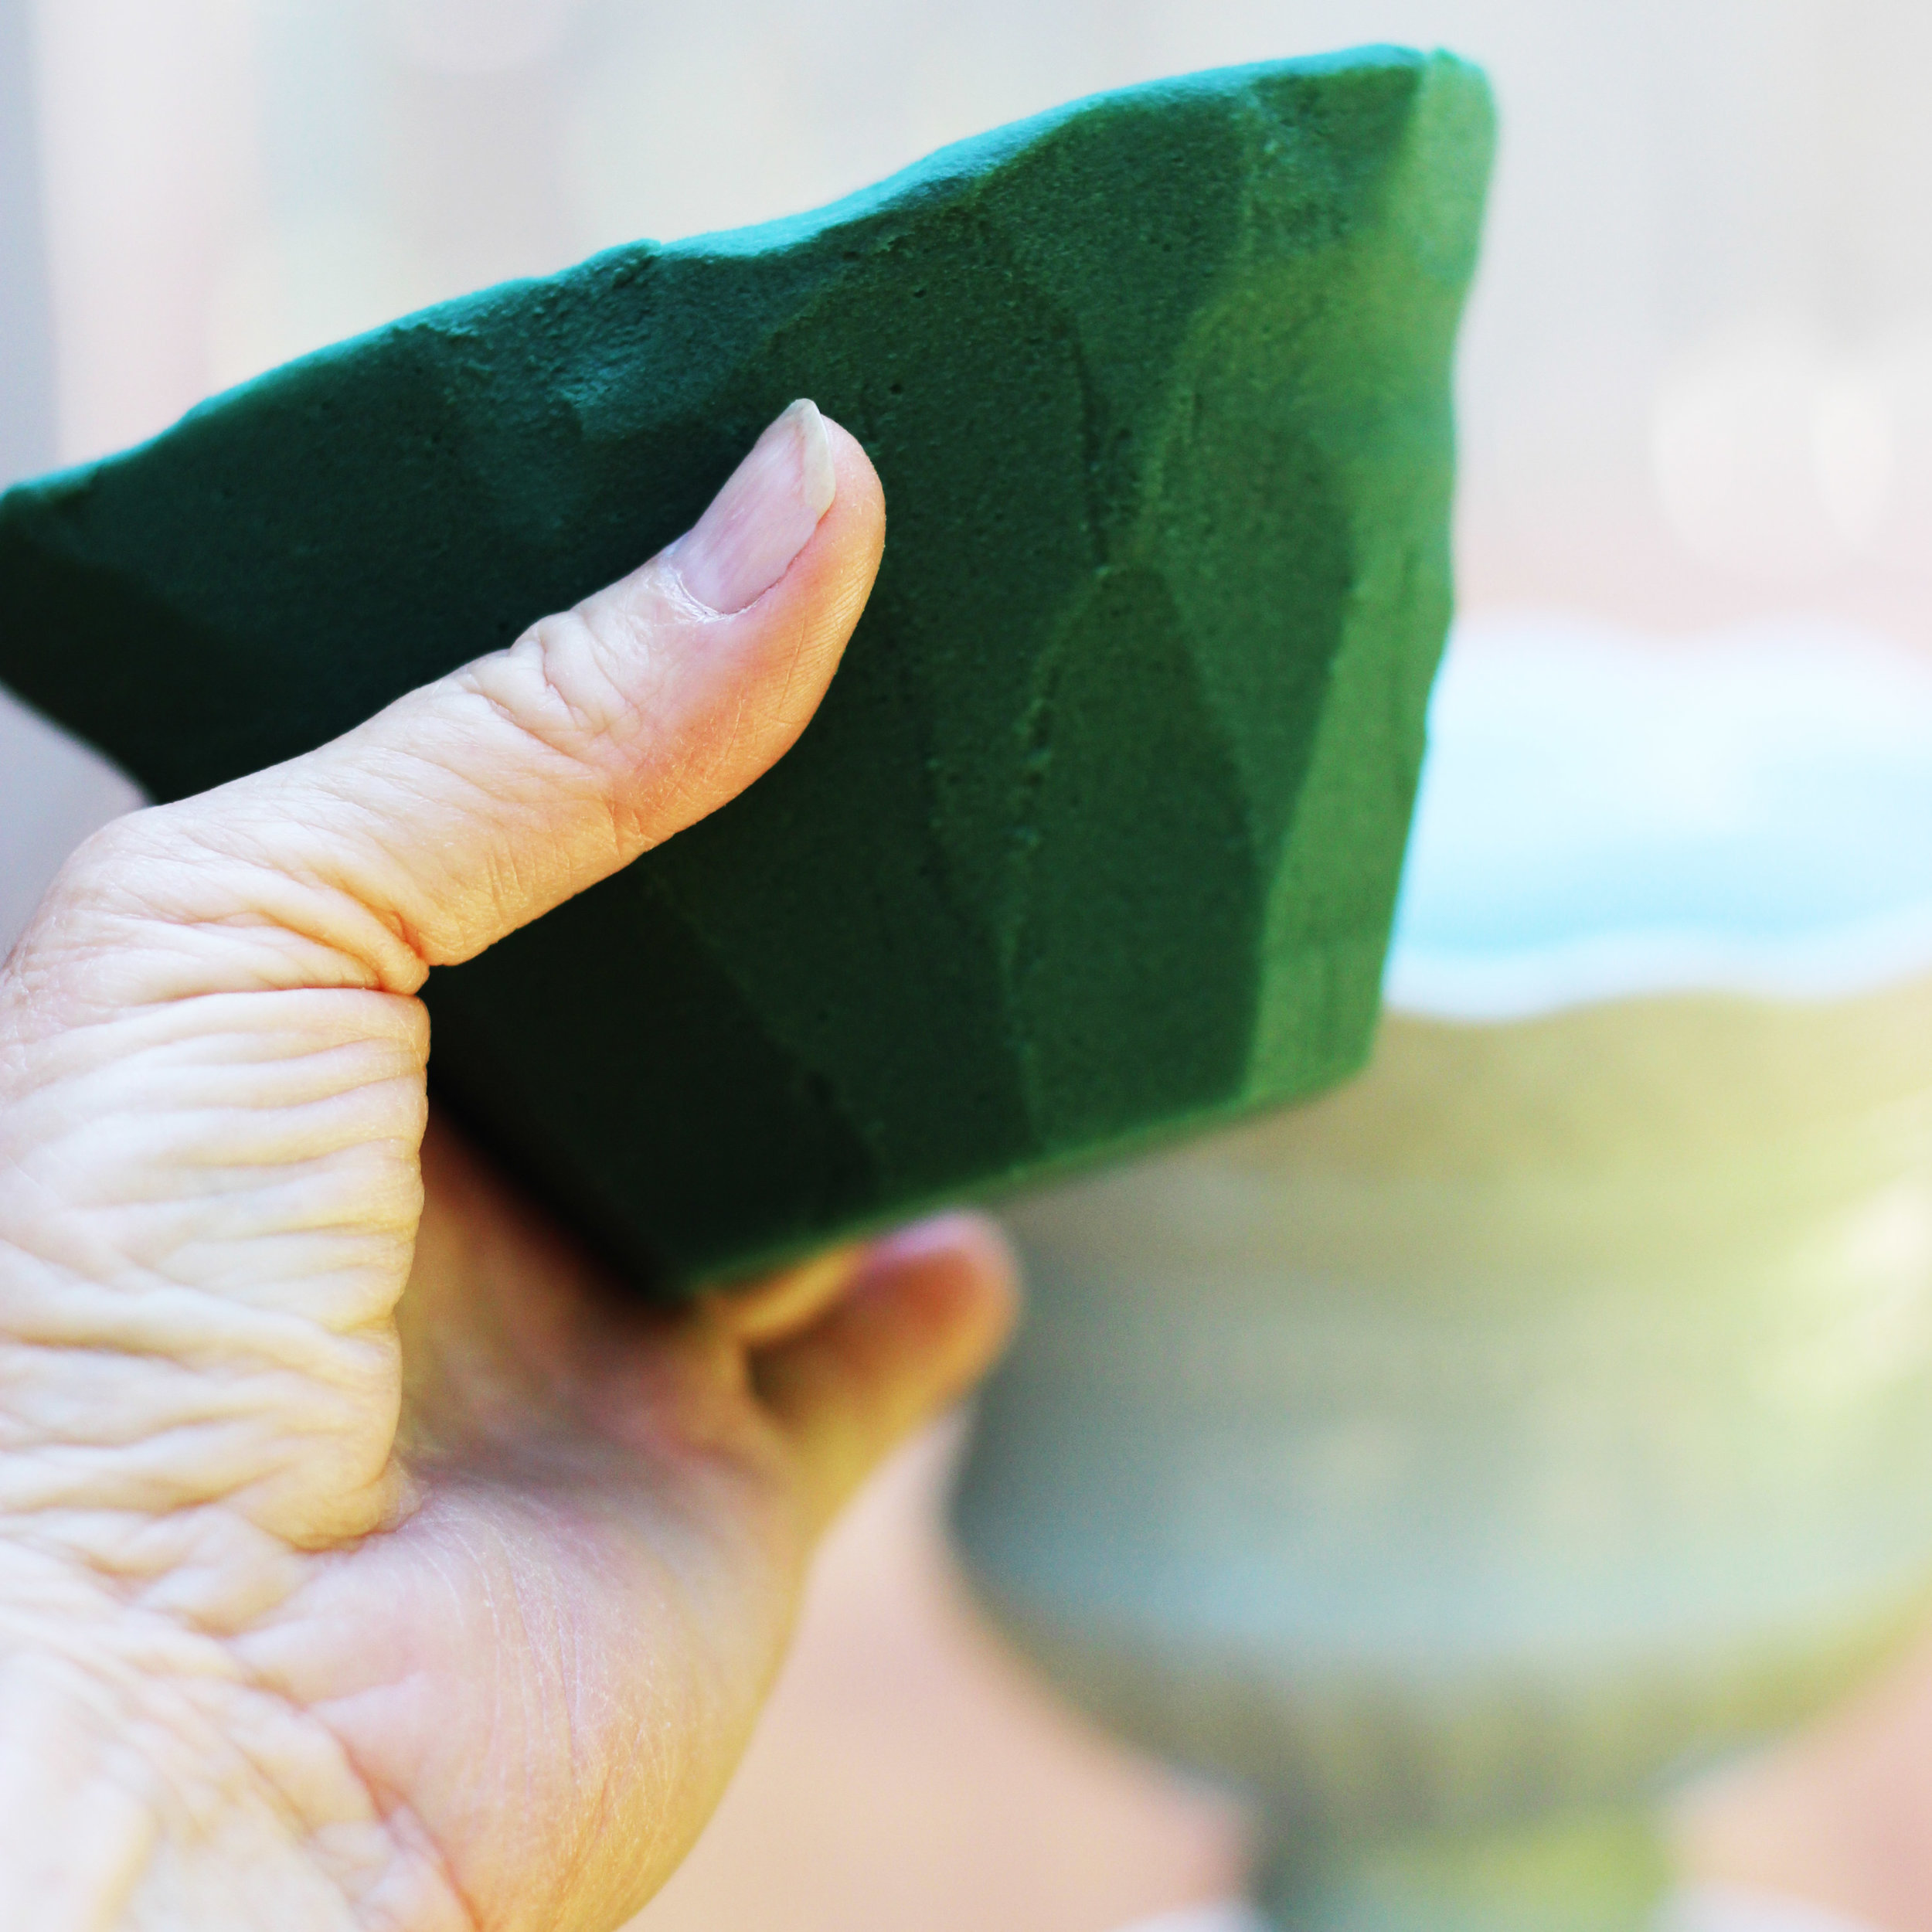 Use a produce knife to shape your floral foam to fit into the urn.